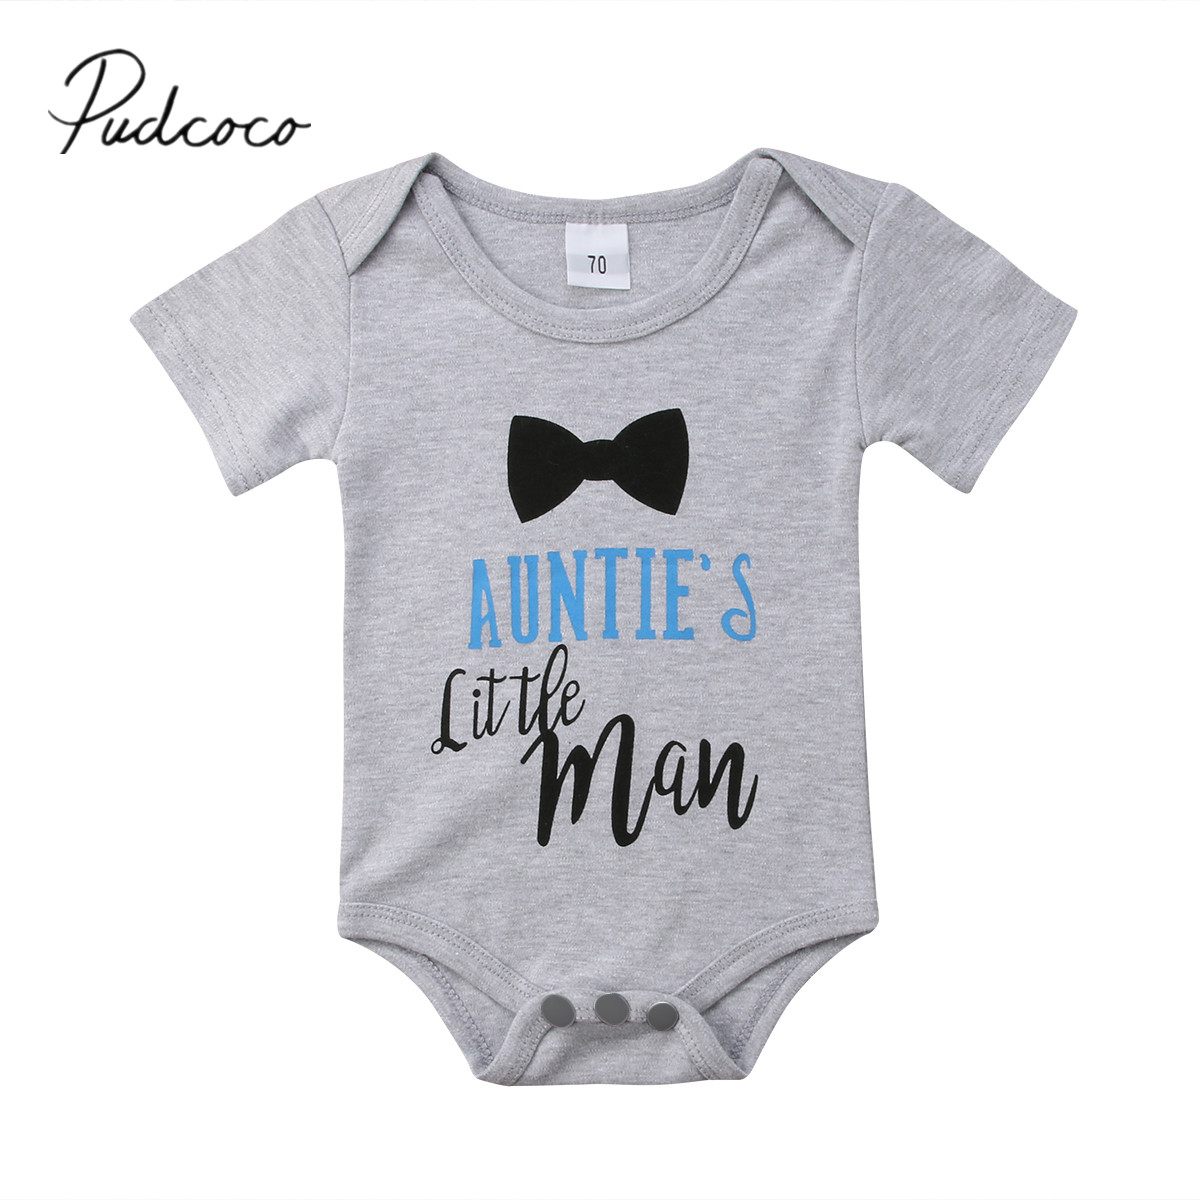 2018 Brand New Newborn Toddler Kids Boys Girls Summer Bodysuit Short Sleeve Letter Bow Print Grey Jumpsuit Playsuit Outfit 0-24M